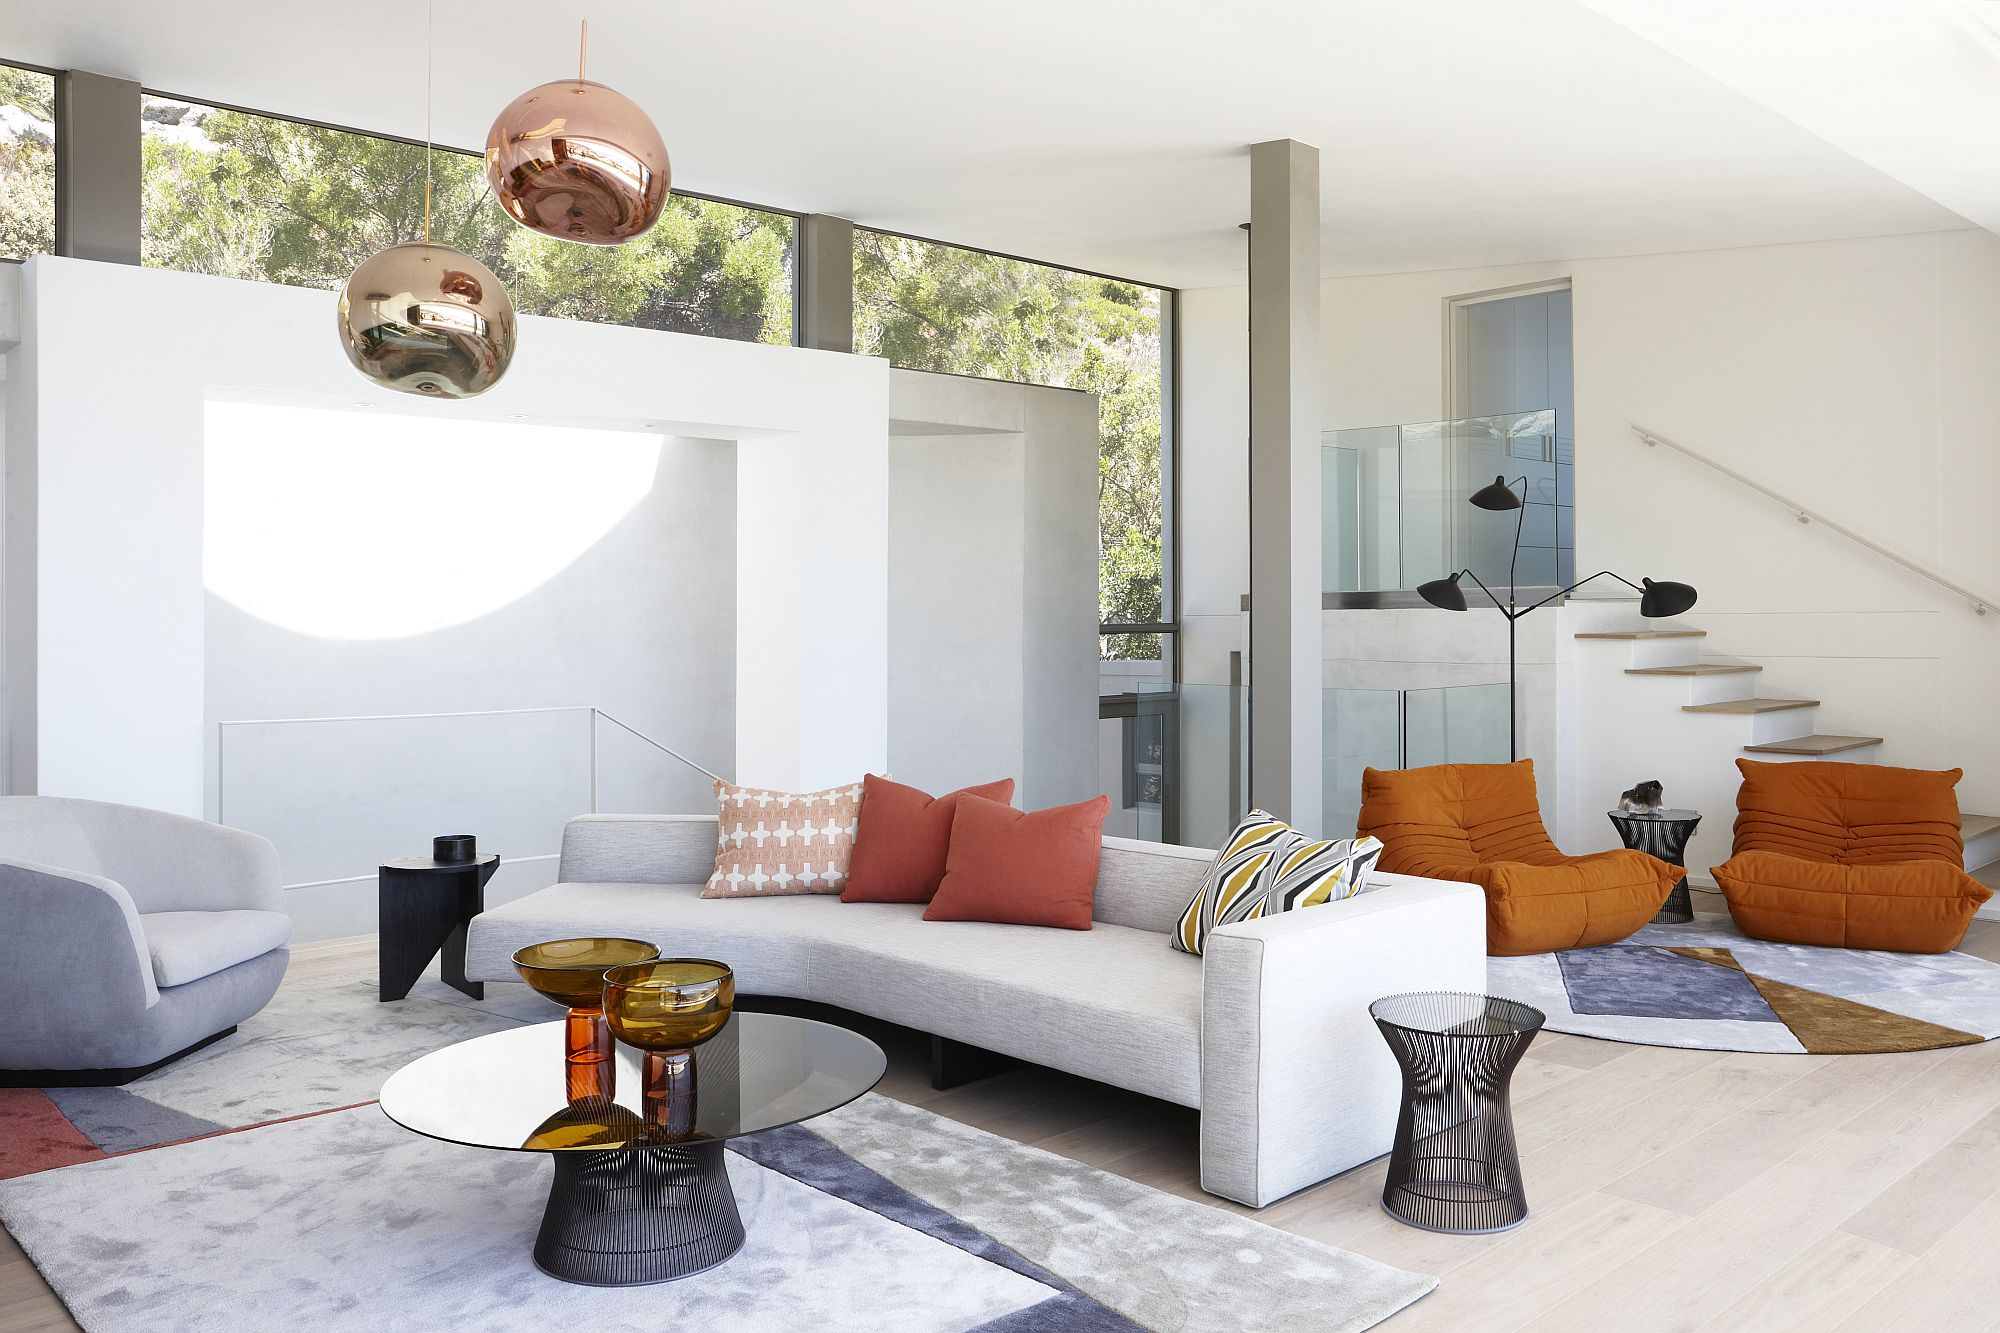 Glass creates a seamless outdoor-indoor interplay in the house